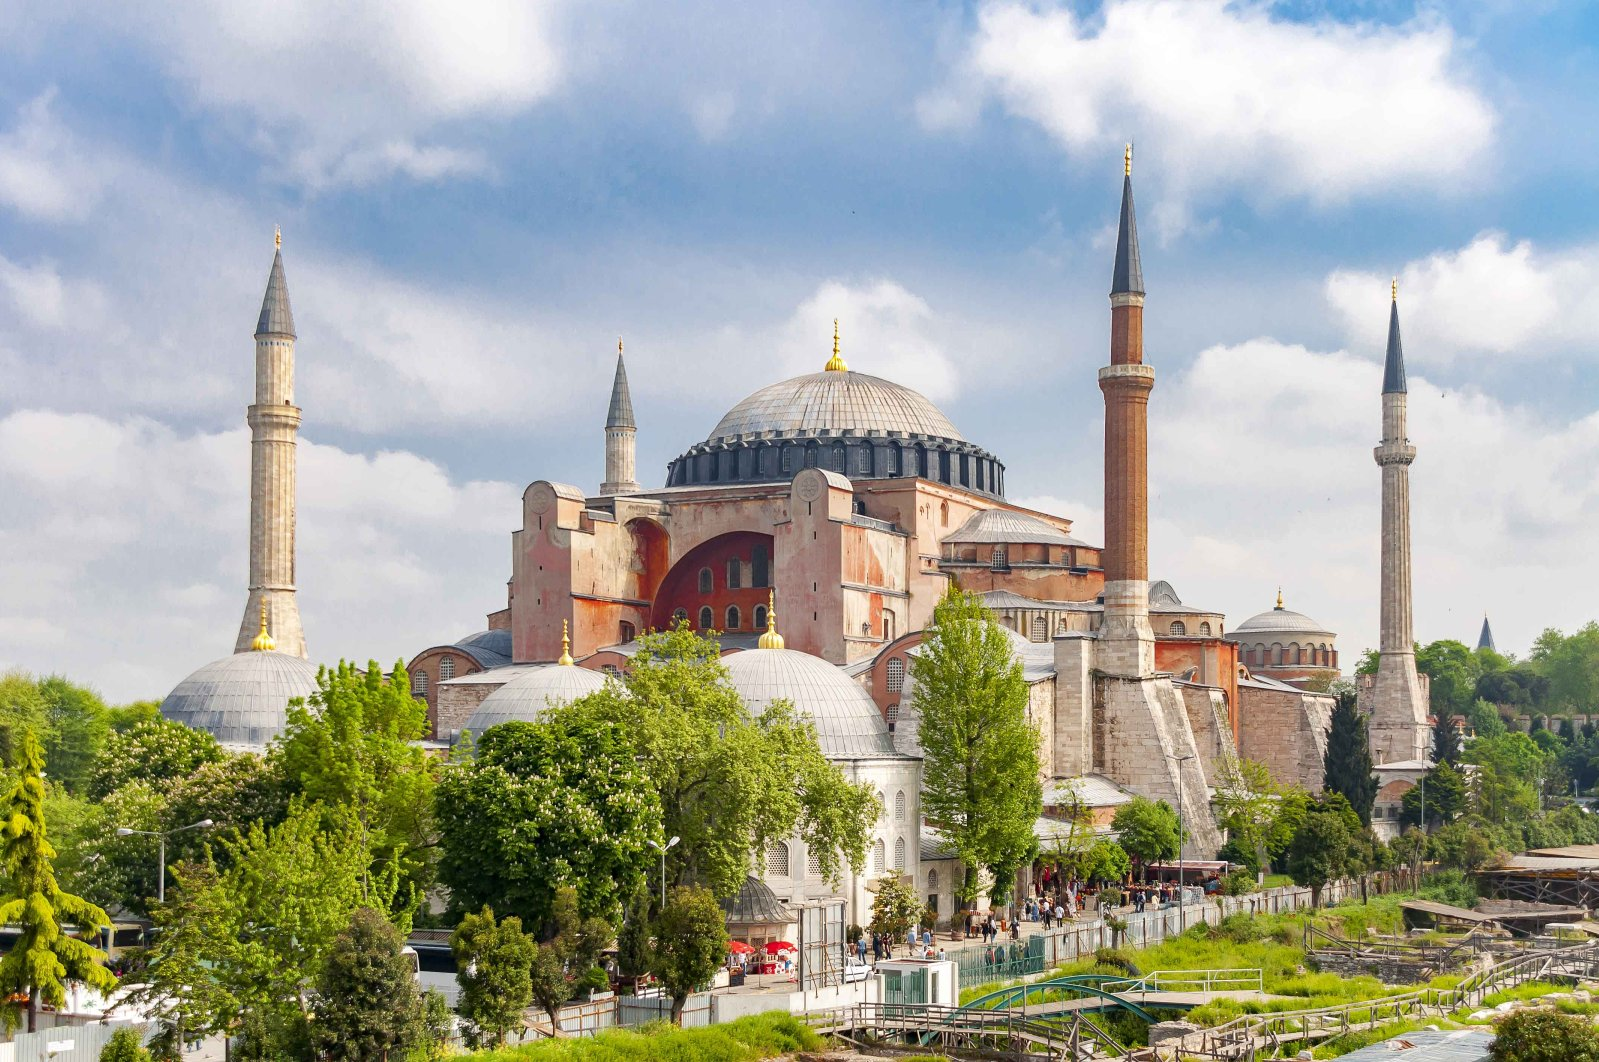 Hagia Sophia is one of the world's most important historical and cultural heritage sites. (iStock Photo)